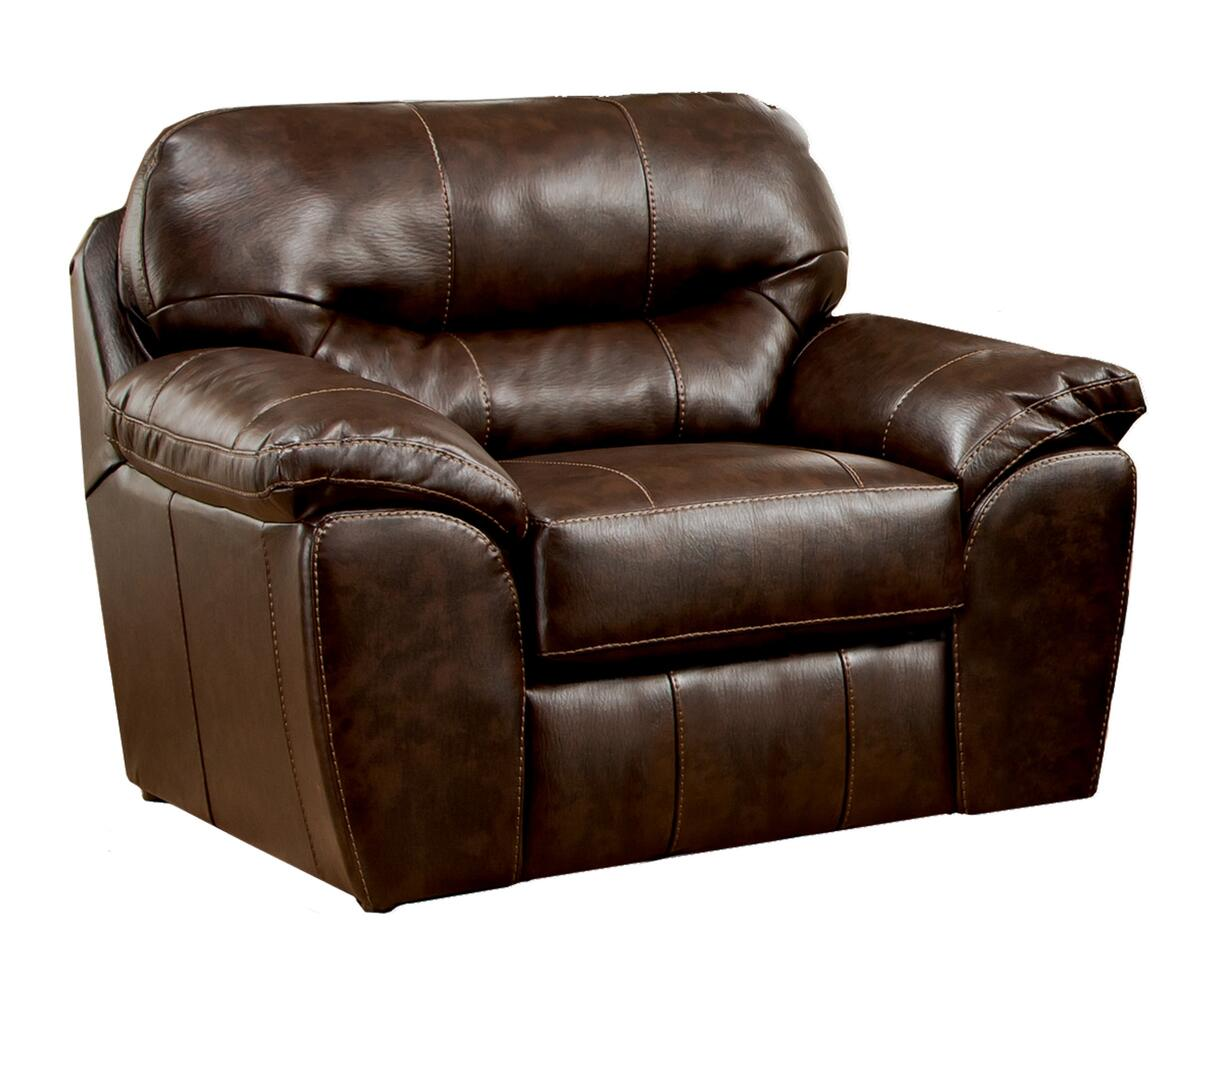 Jackson furniture 443001121509301509 brantley series for Furniture 5 years no interest